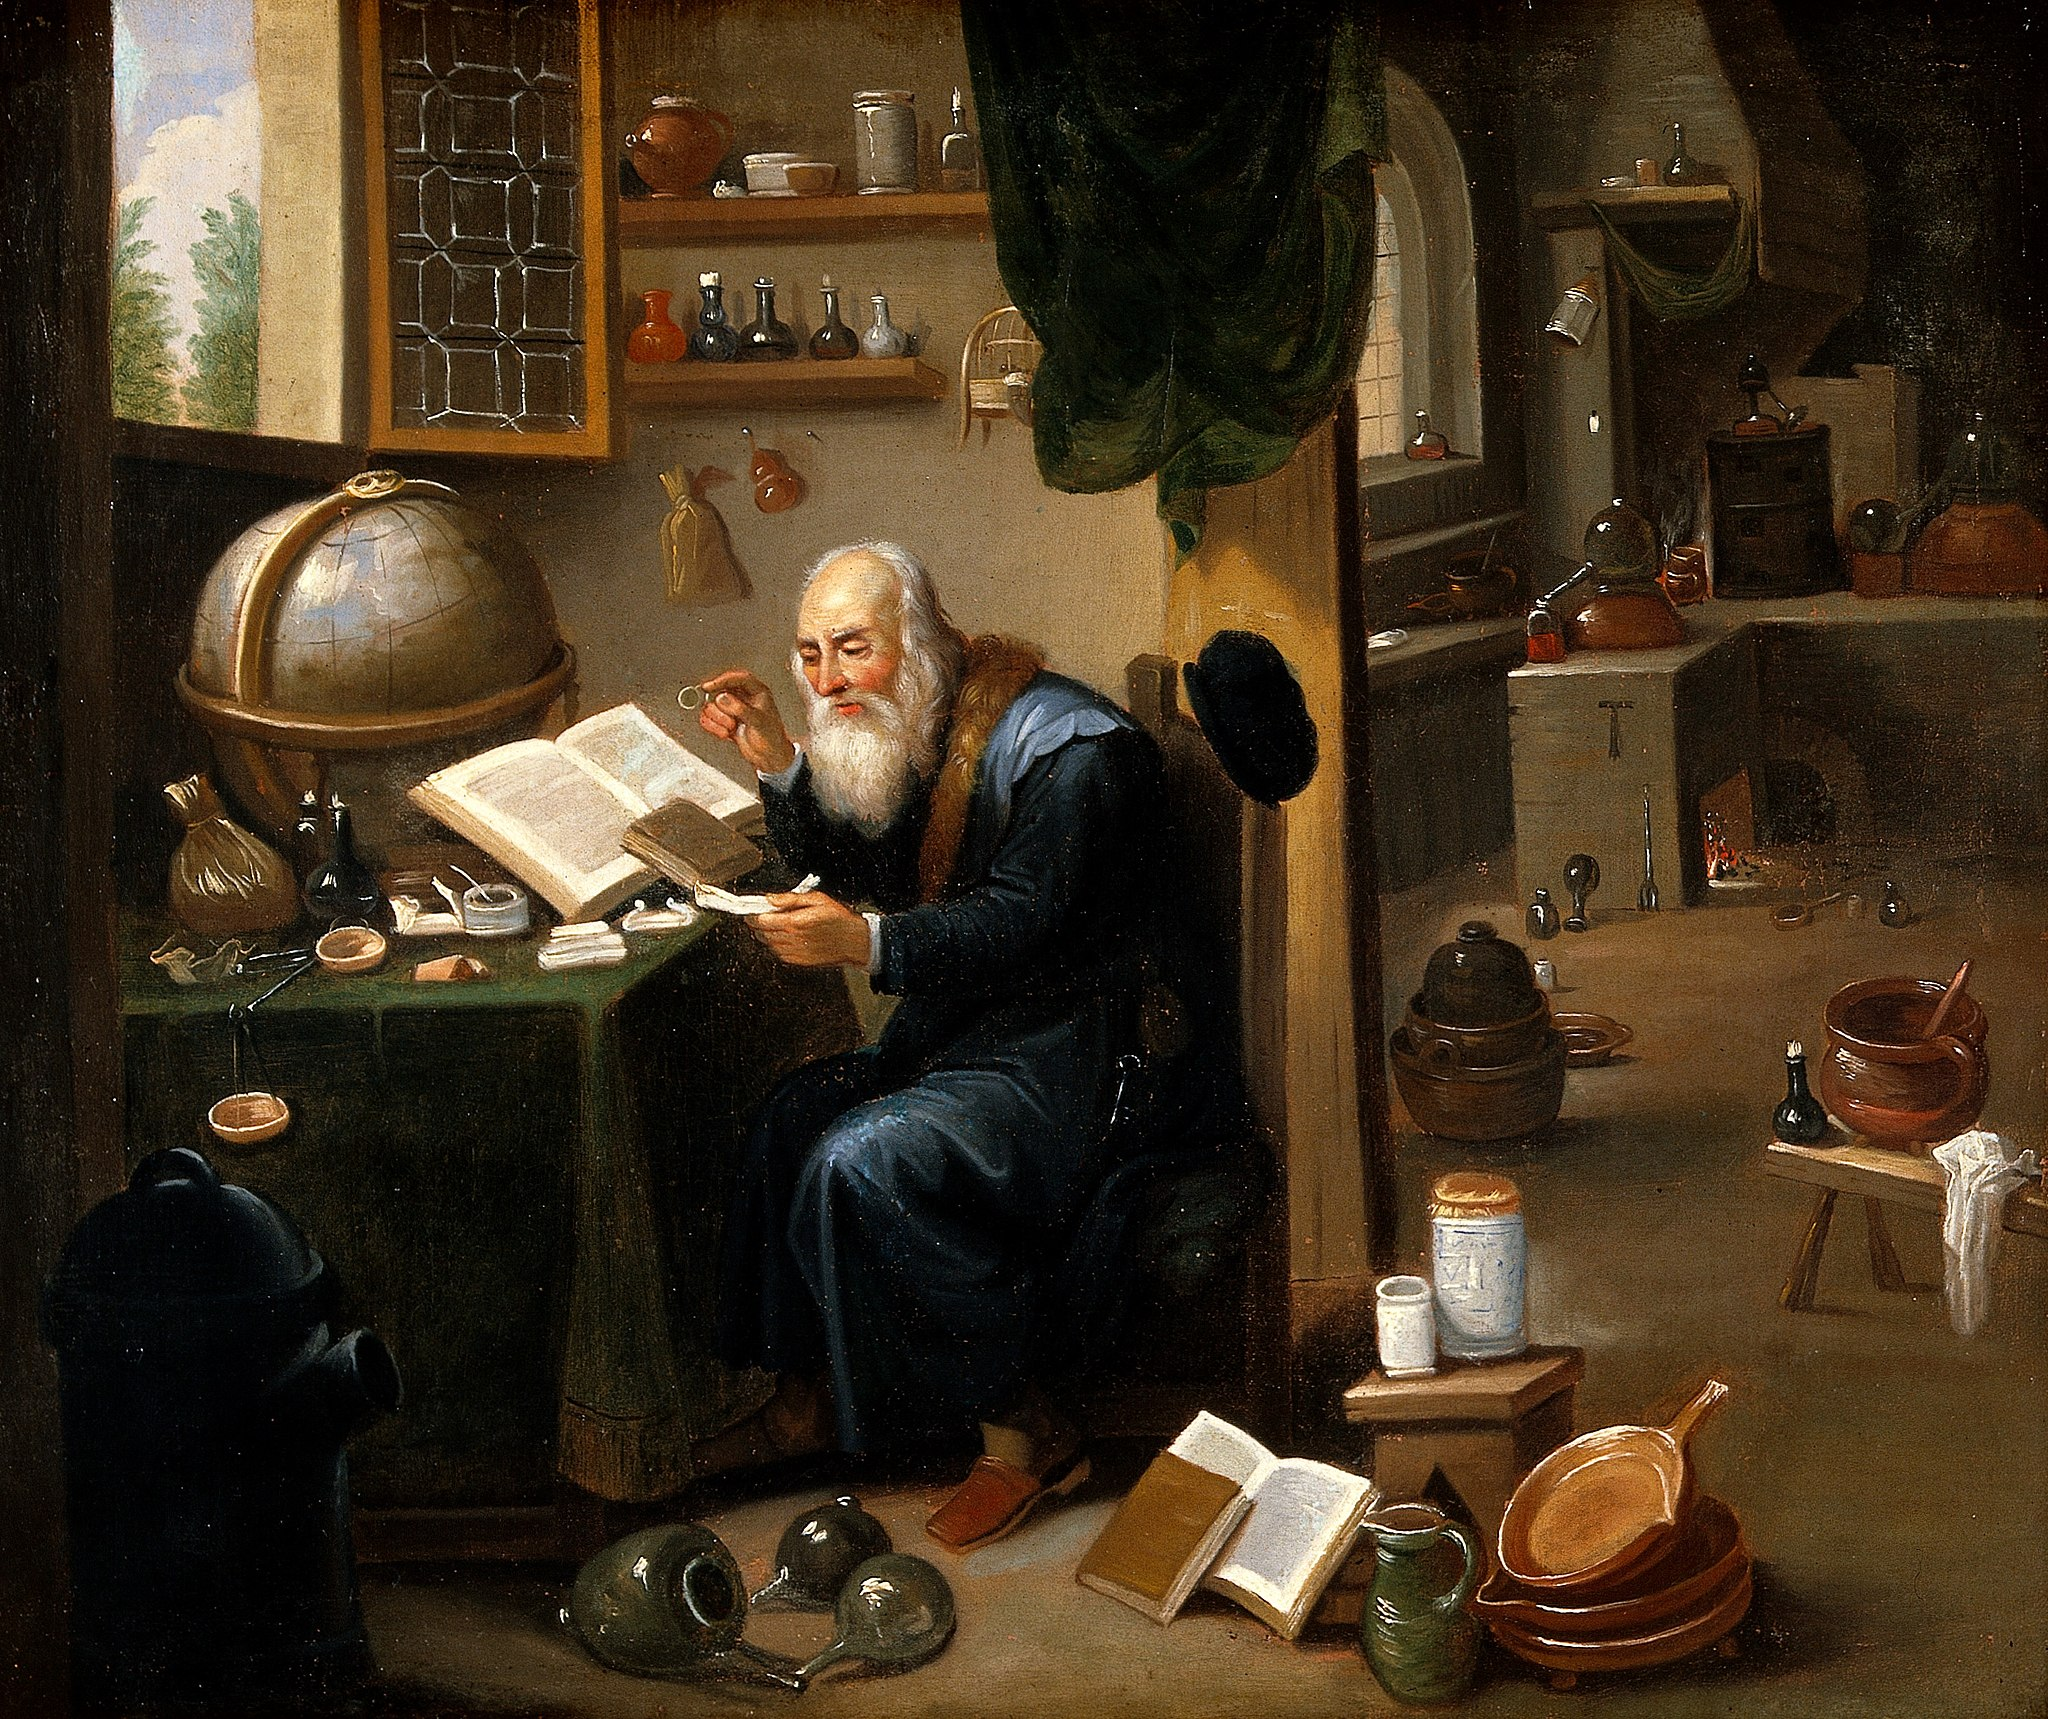 2048px-An_alchemist_in_his_laboratory._Oil_painting_by_a_follower_o_Wellcome_V0017631.jpg